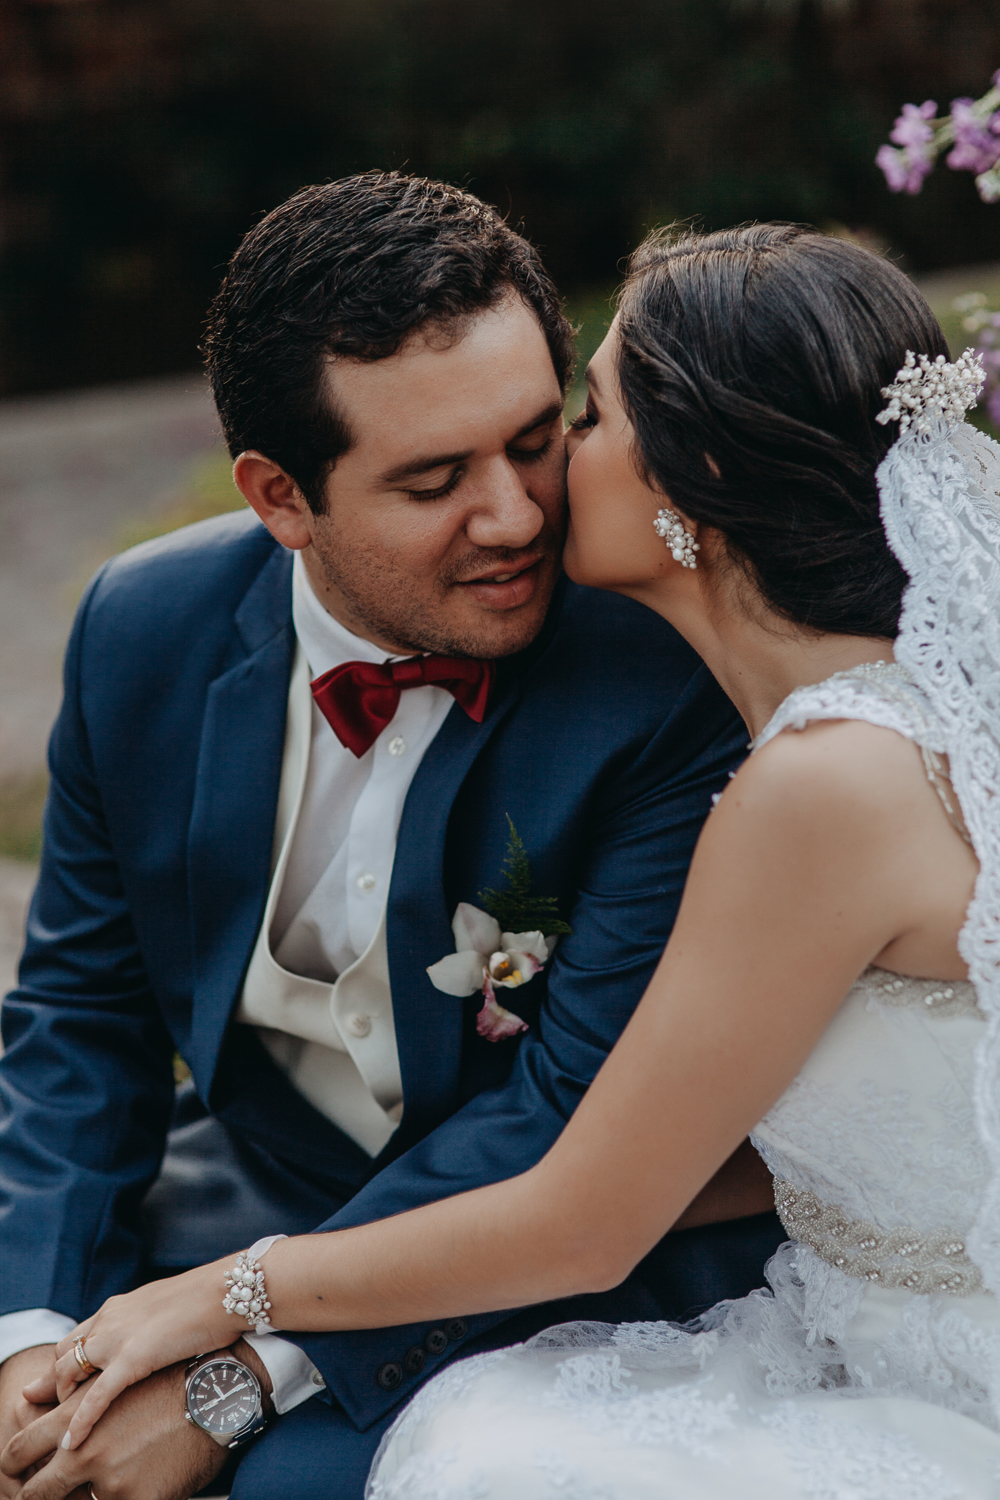 Michelle-Agurto-Fotografia-Bodas-Ecuador-Destination-Wedding-Photographer-Cristi-Luis-110.JPG